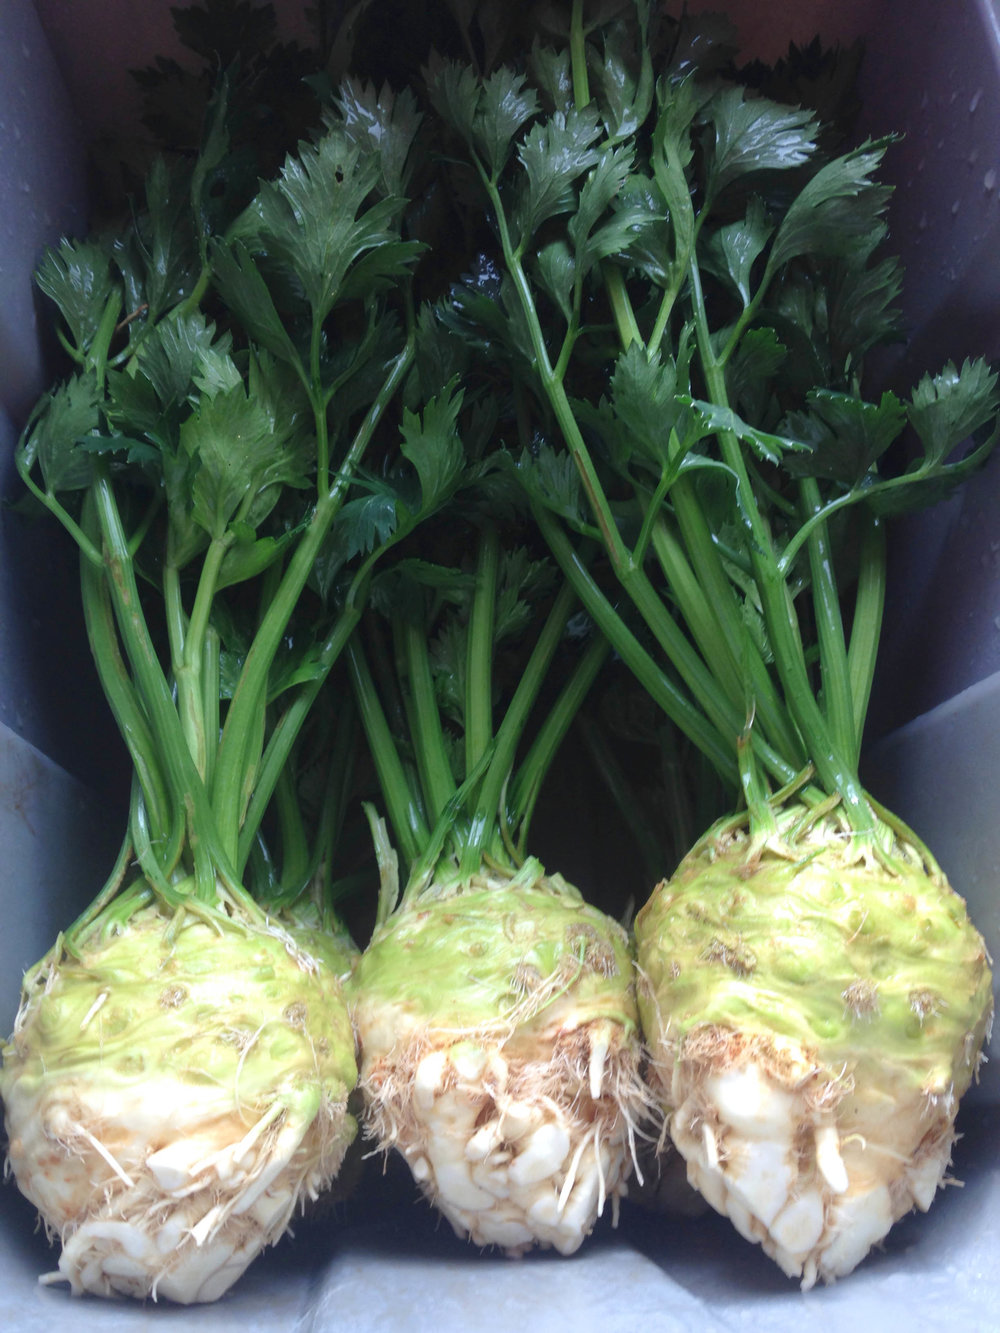 Celeriac washed and packed.